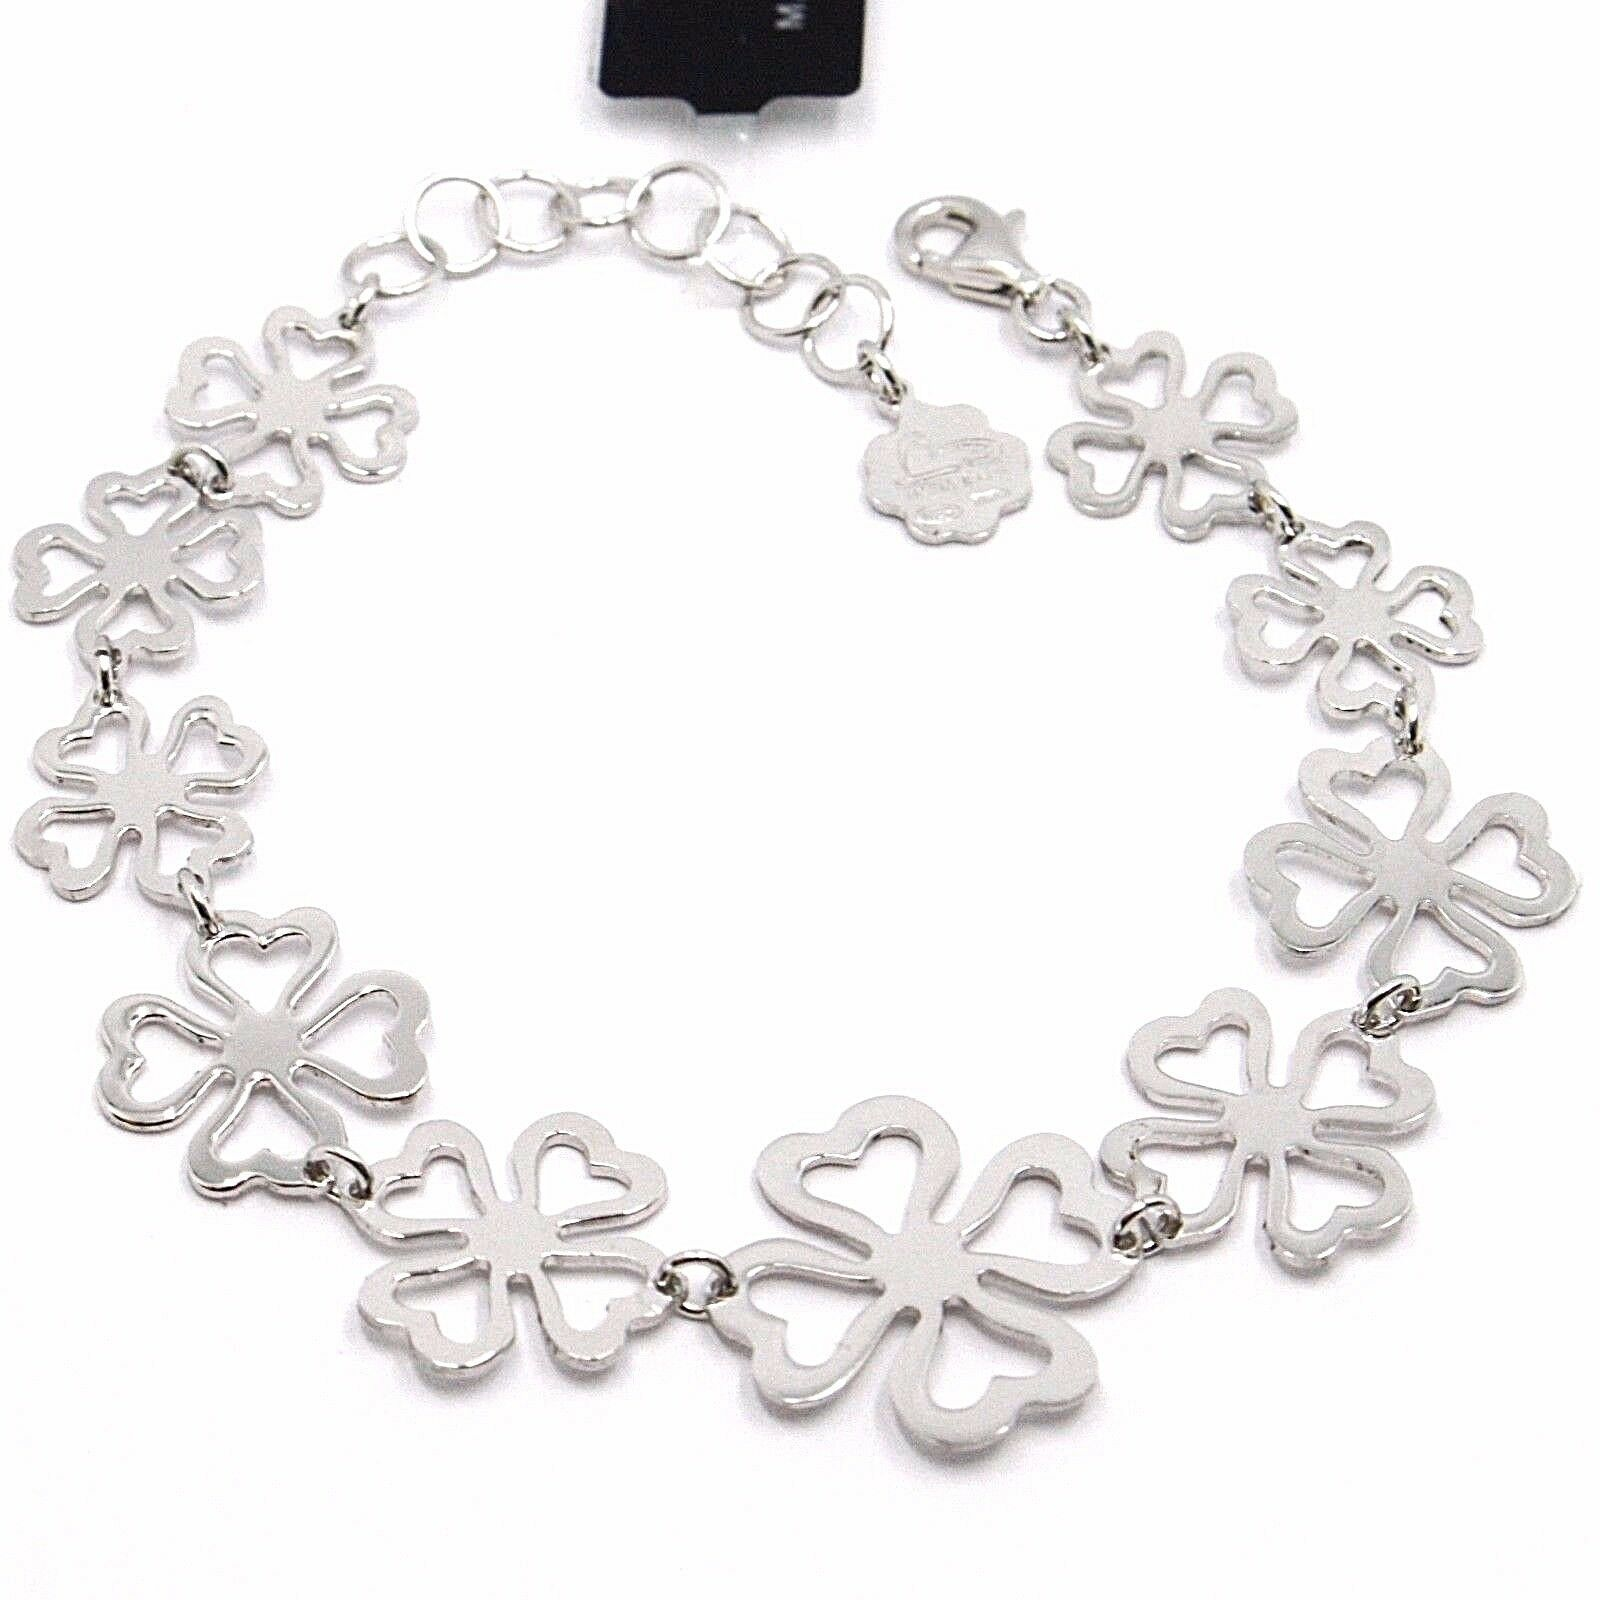 925 Silver Bracelet, Four-Leaf Clover Good Luck Charm, by Mary Jane Ielpo ,